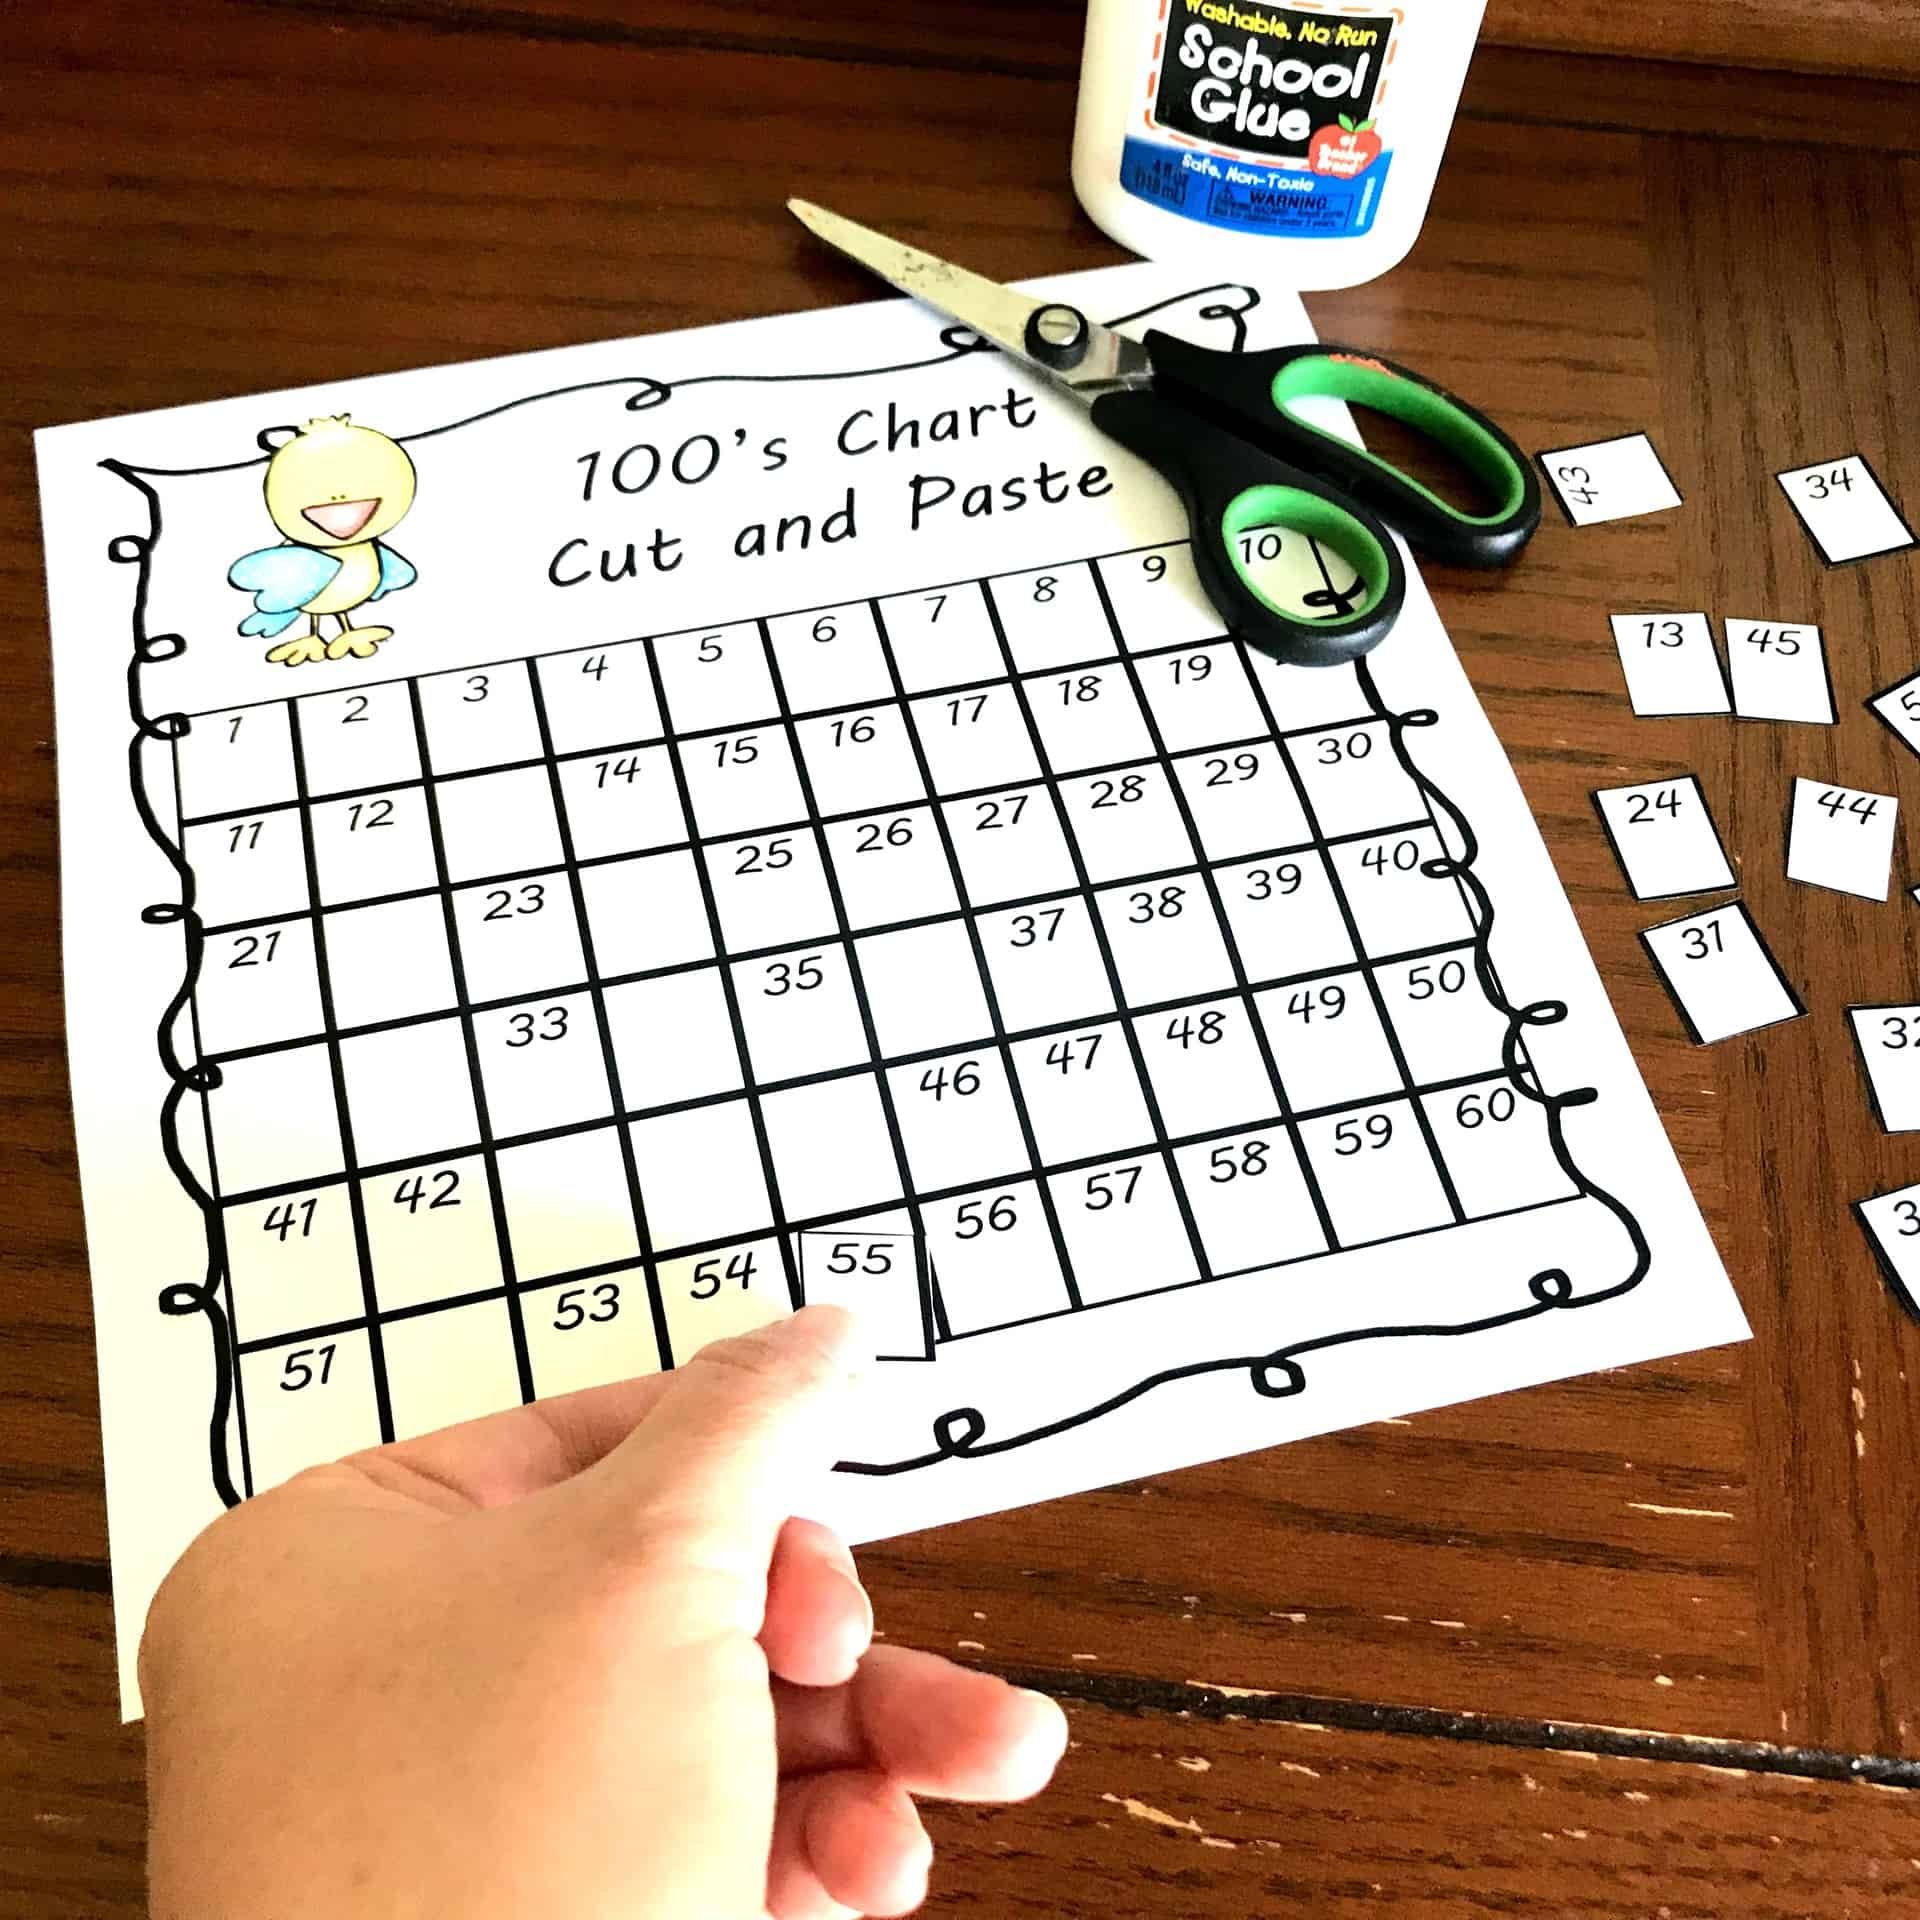 5 FREE Hundreds Chart with Missing Numbers - Cut and Paste